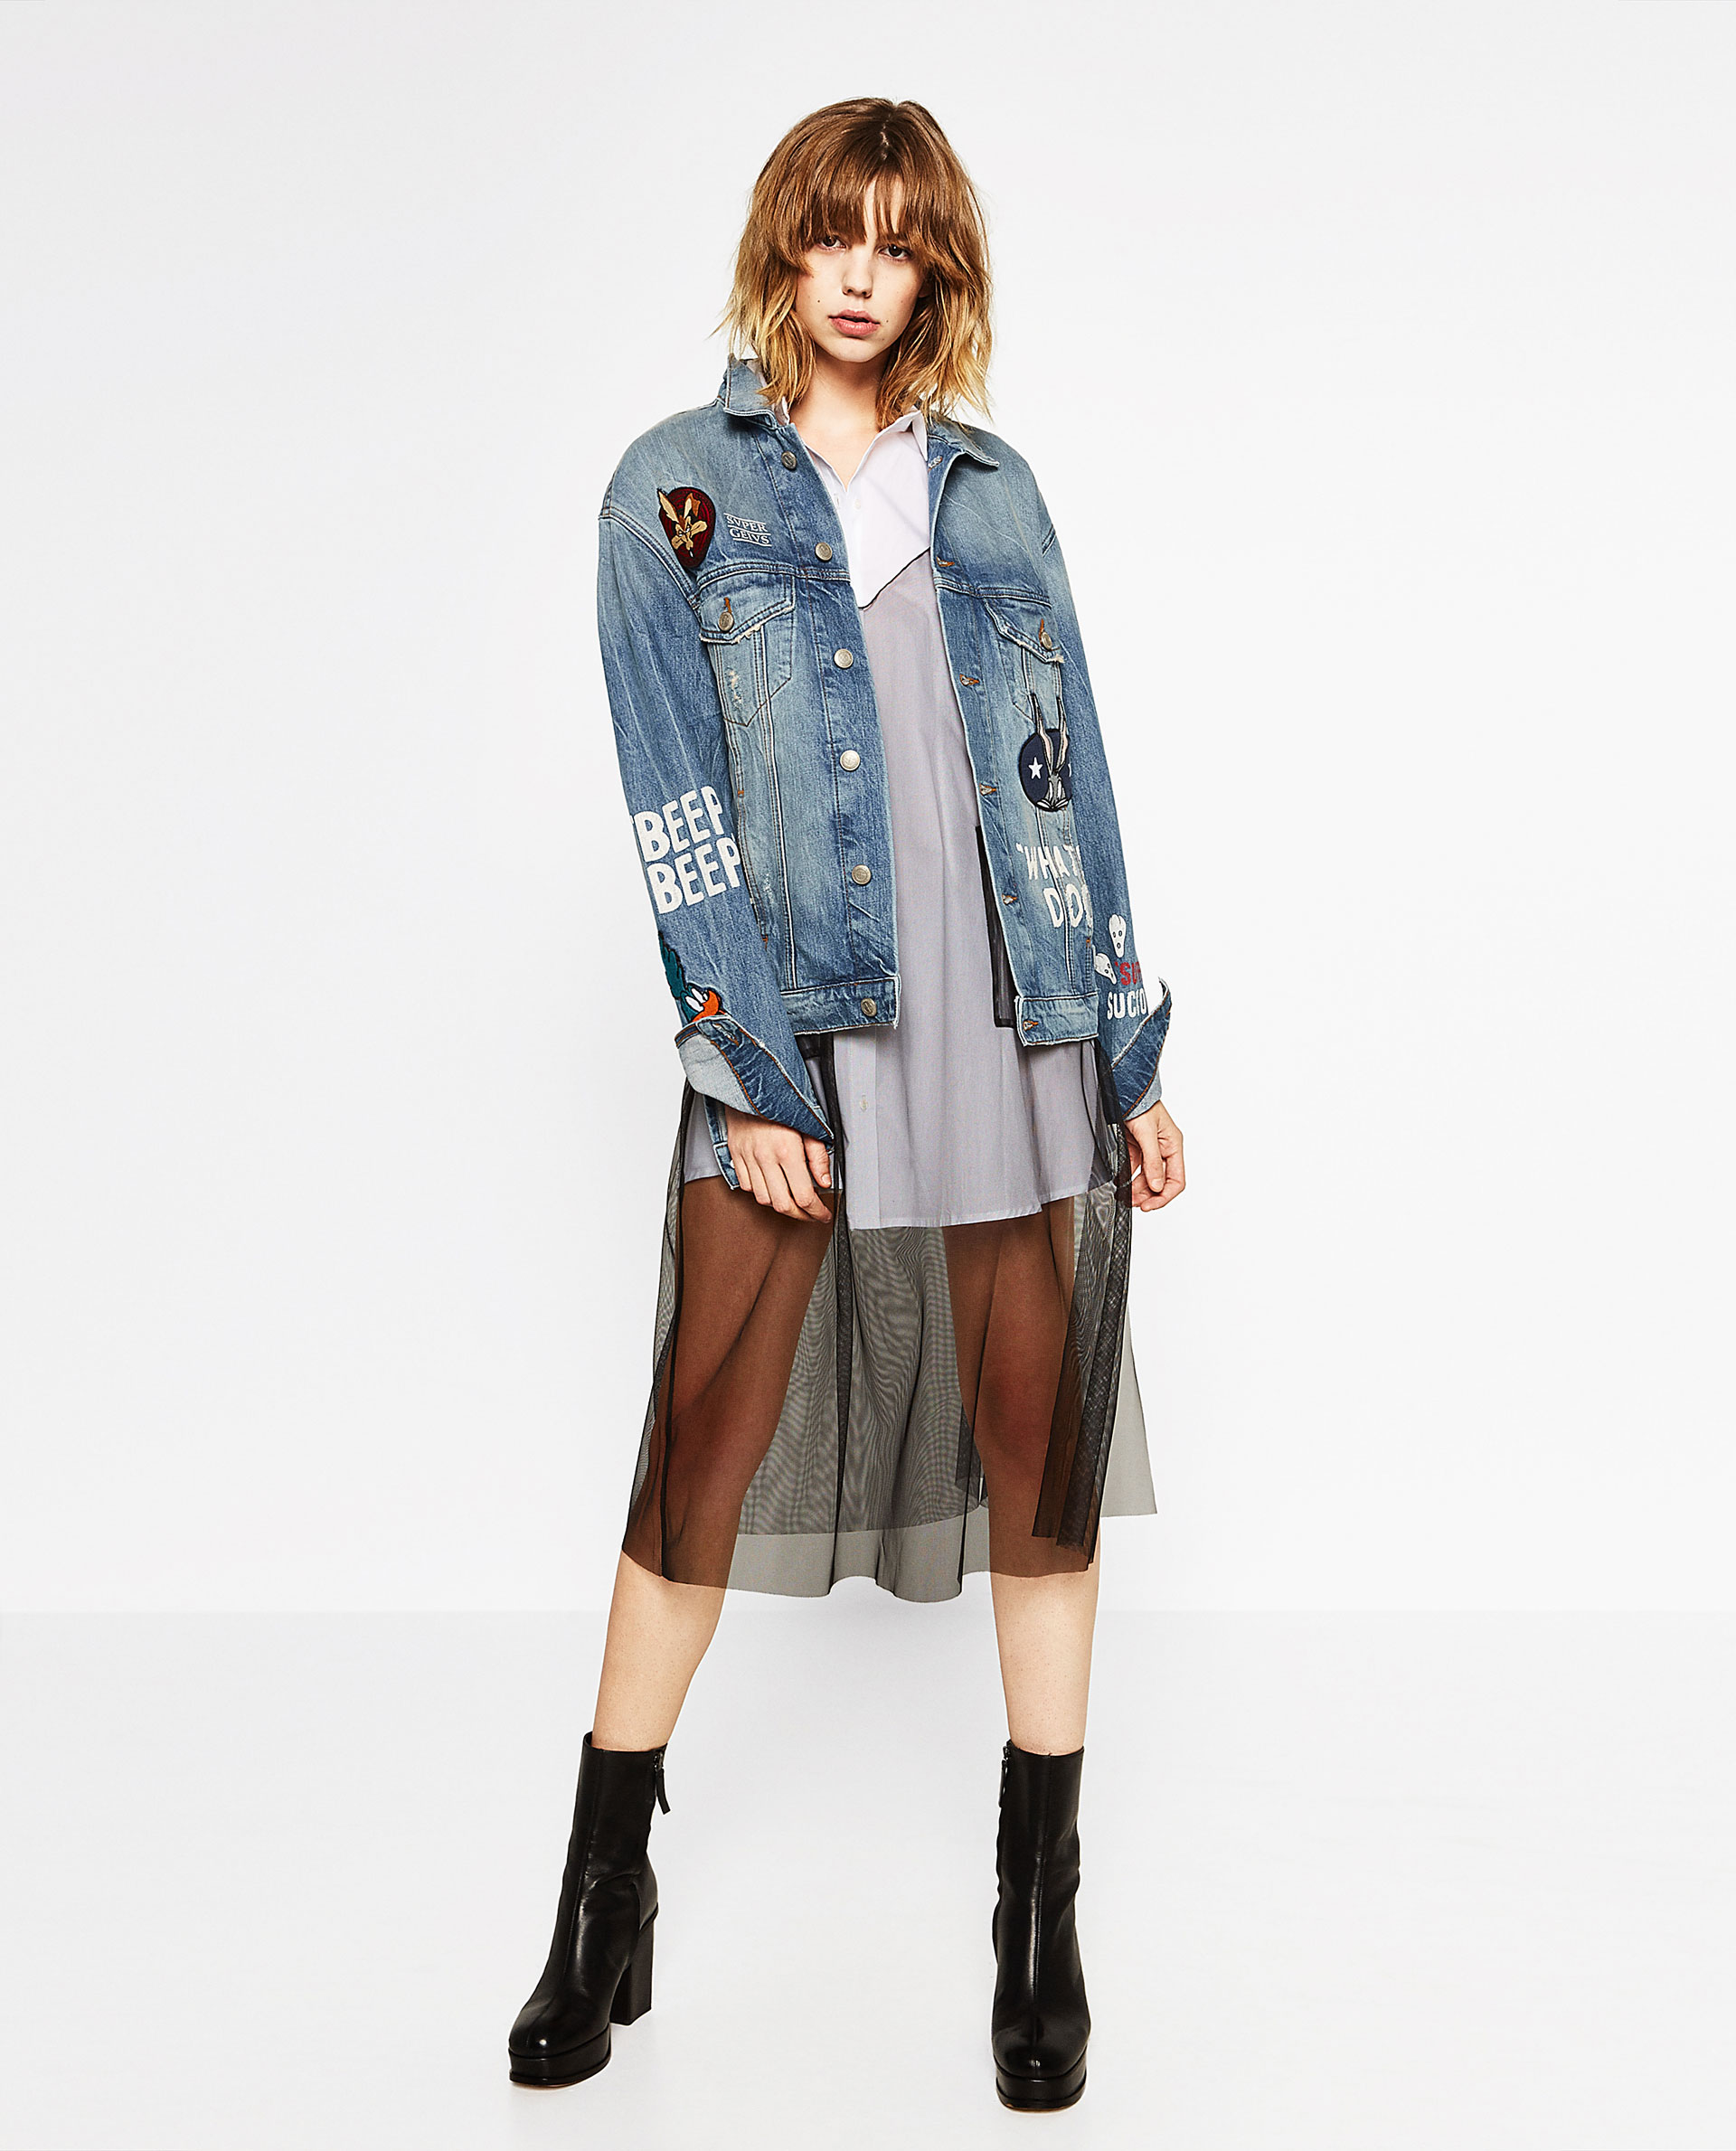 zara, layering, denim jacket mesh dress, white tshirt, ankle boots, outfit ideas